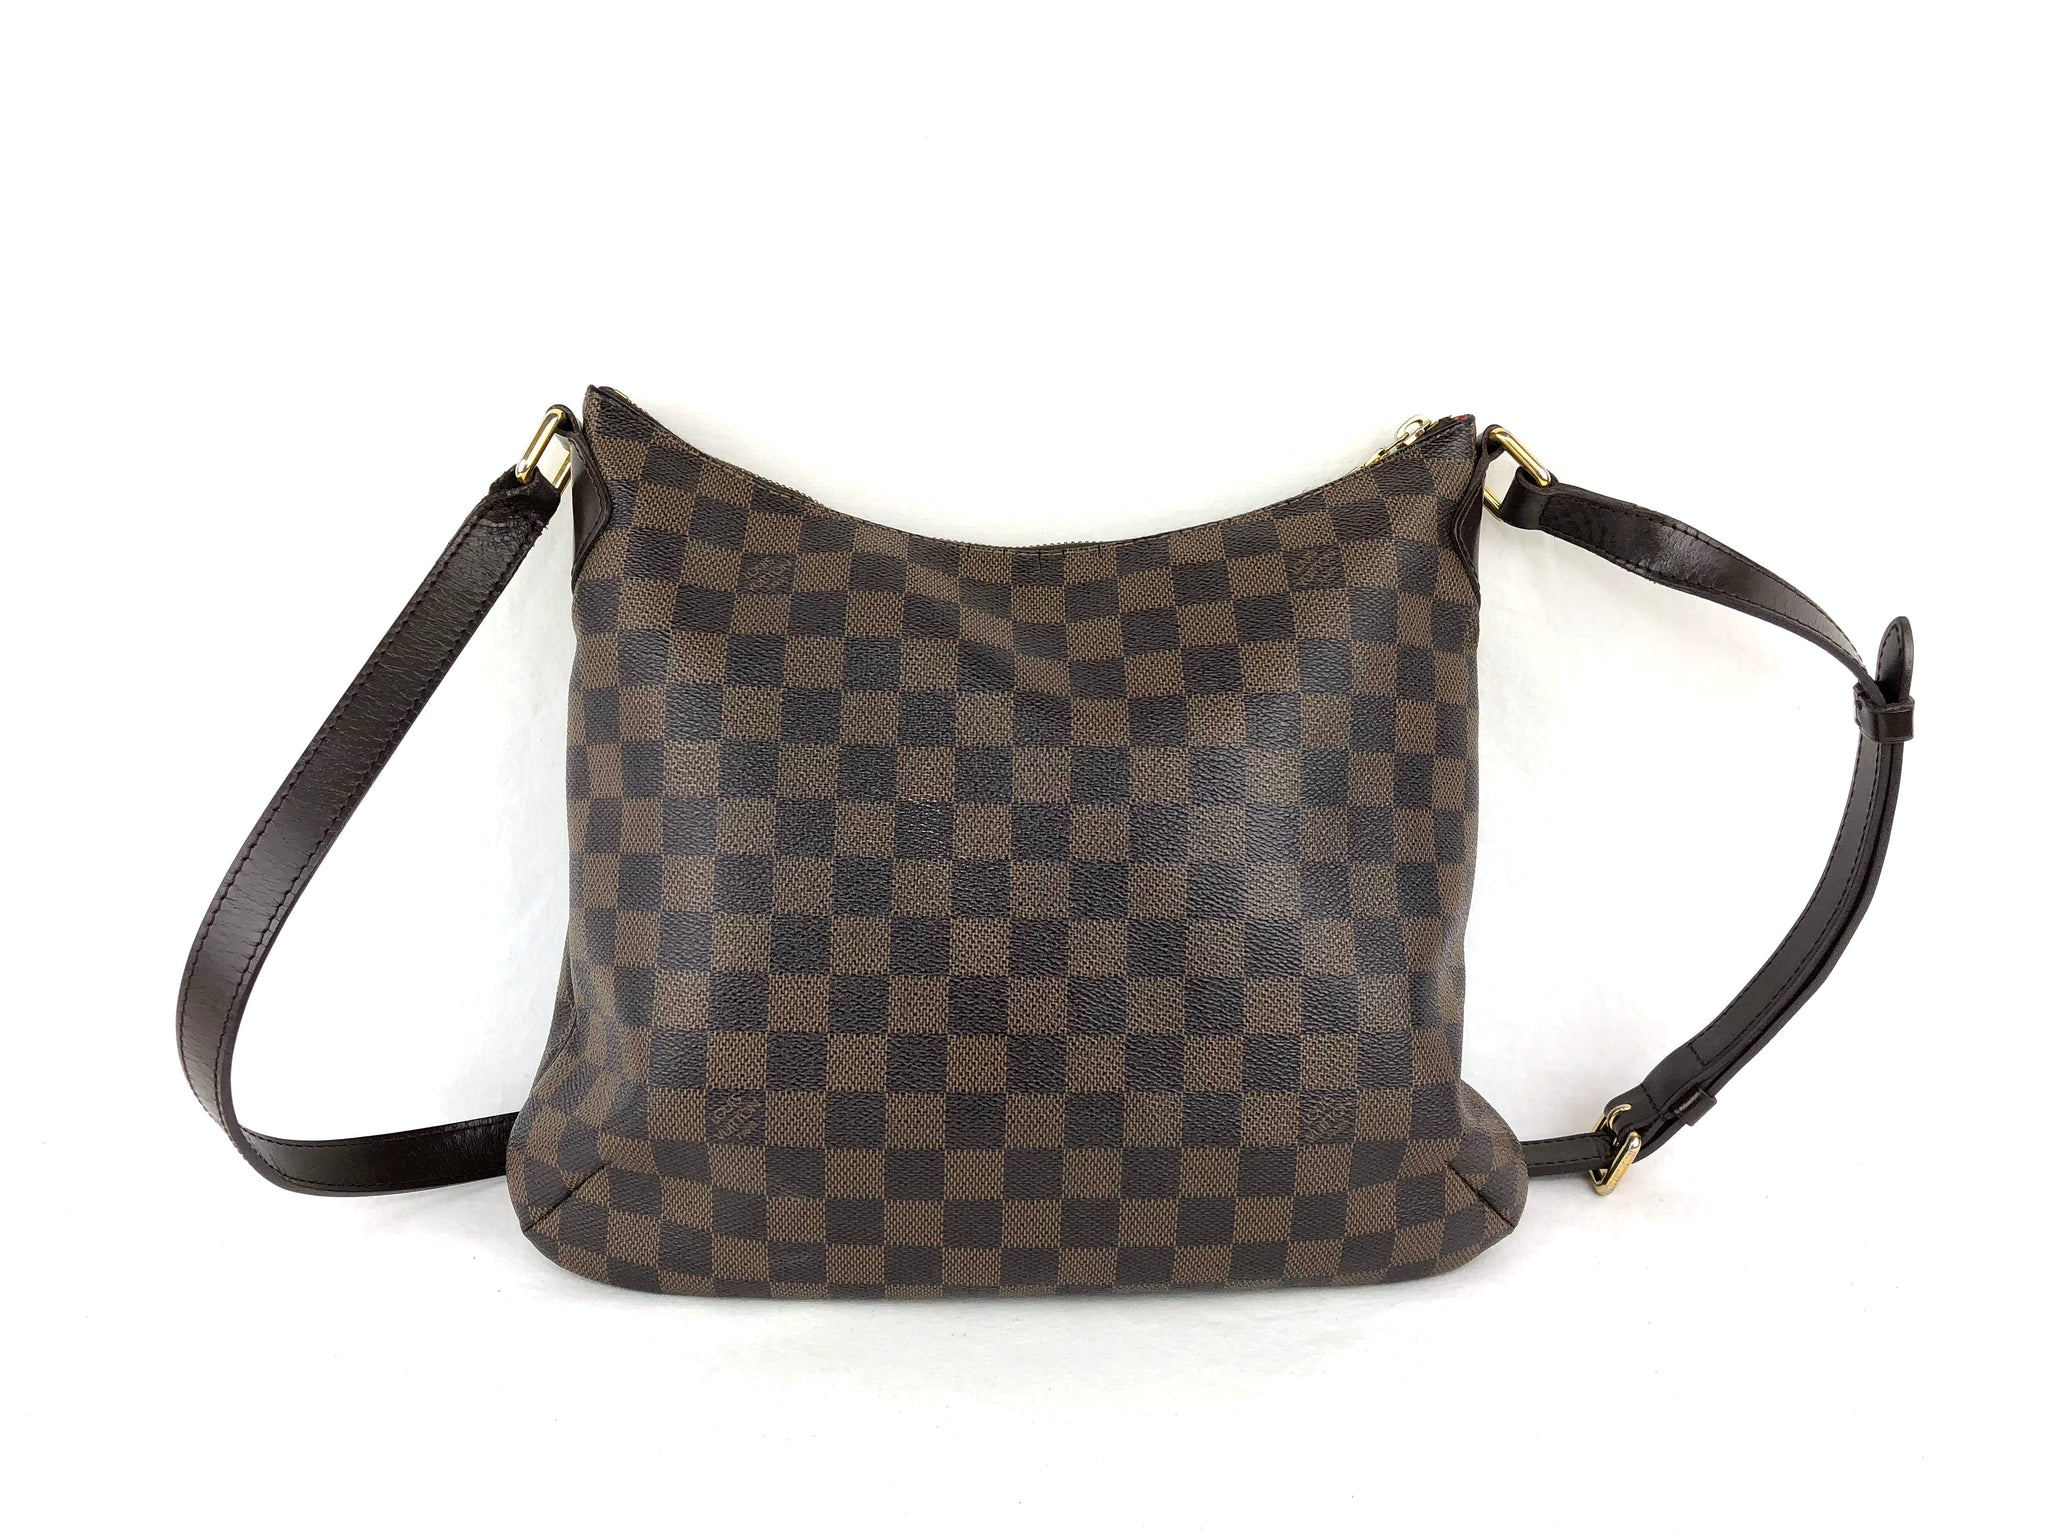 LOUIS VUITTON Bloomsbury PM Bag in Damier Ebene